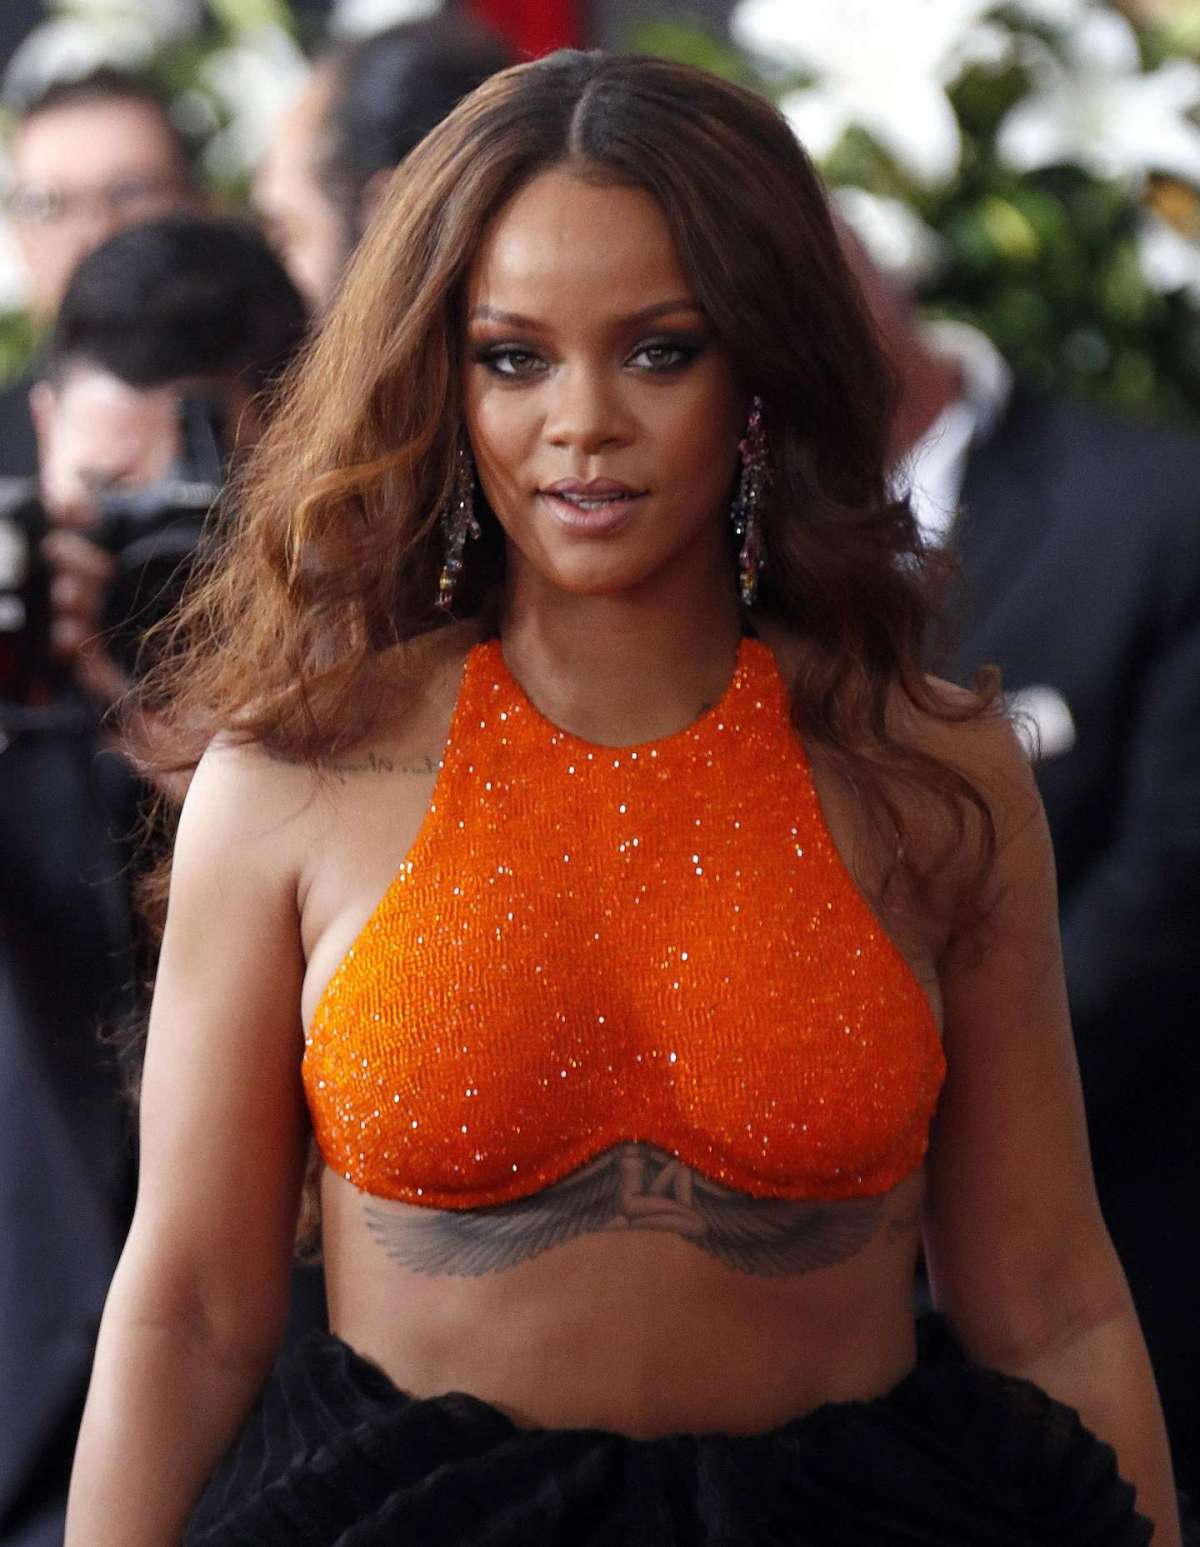 Rihanna arrives for the 59th annual Grammy Awards ceremony at the Staples Center in Los Angeles, California, USA, 12 February 2017